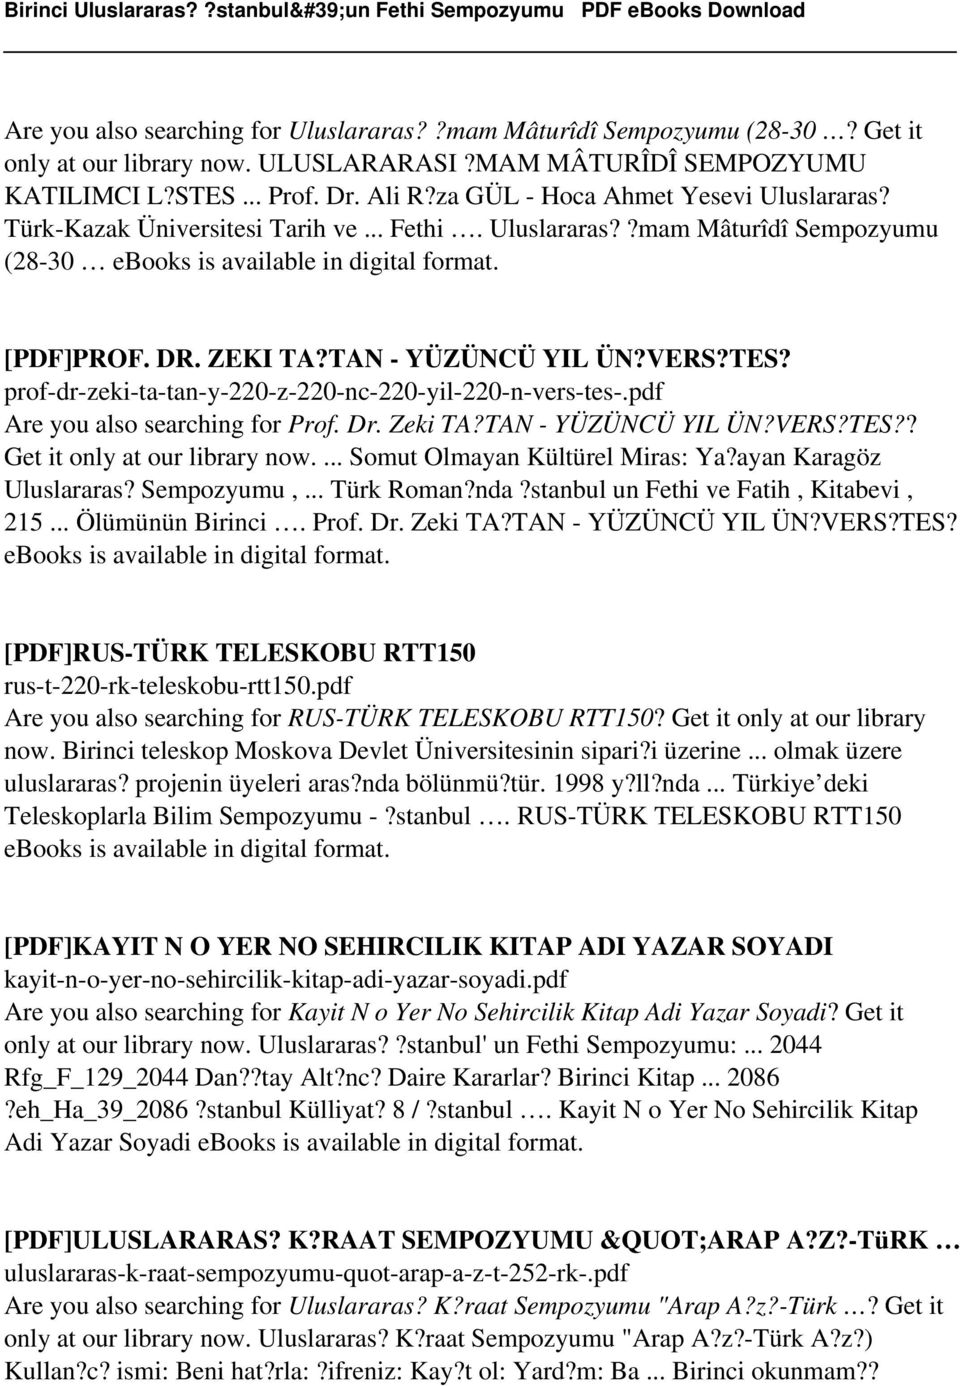 prof-dr-zeki-ta-tan-y-220-z-220-nc-220-yil-220-n-vers-tes-.pdf Are you also searching for Prof. Dr. Zeki TA?TAN - YÜZÜNCÜ YIL ÜN?VERS?TES?? Get it only at our library now.